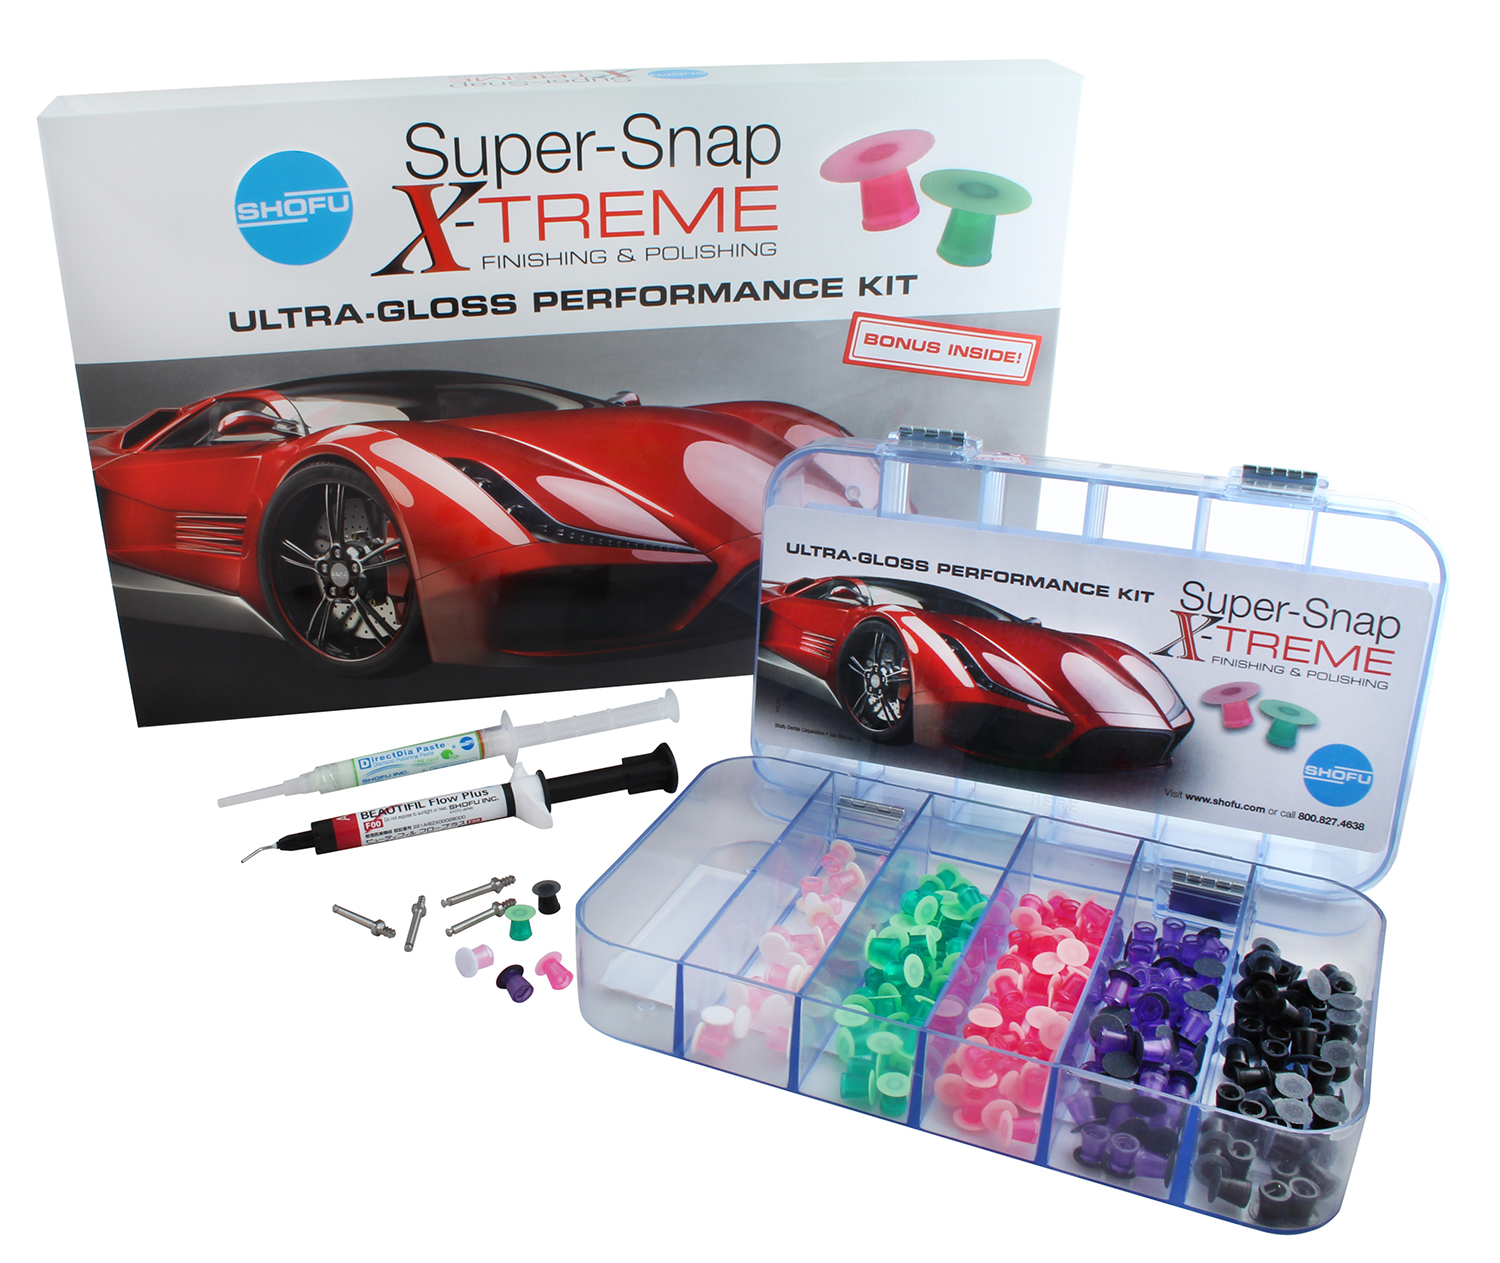 Super-Snap X-treme Ultra-Gloss Performance Kit